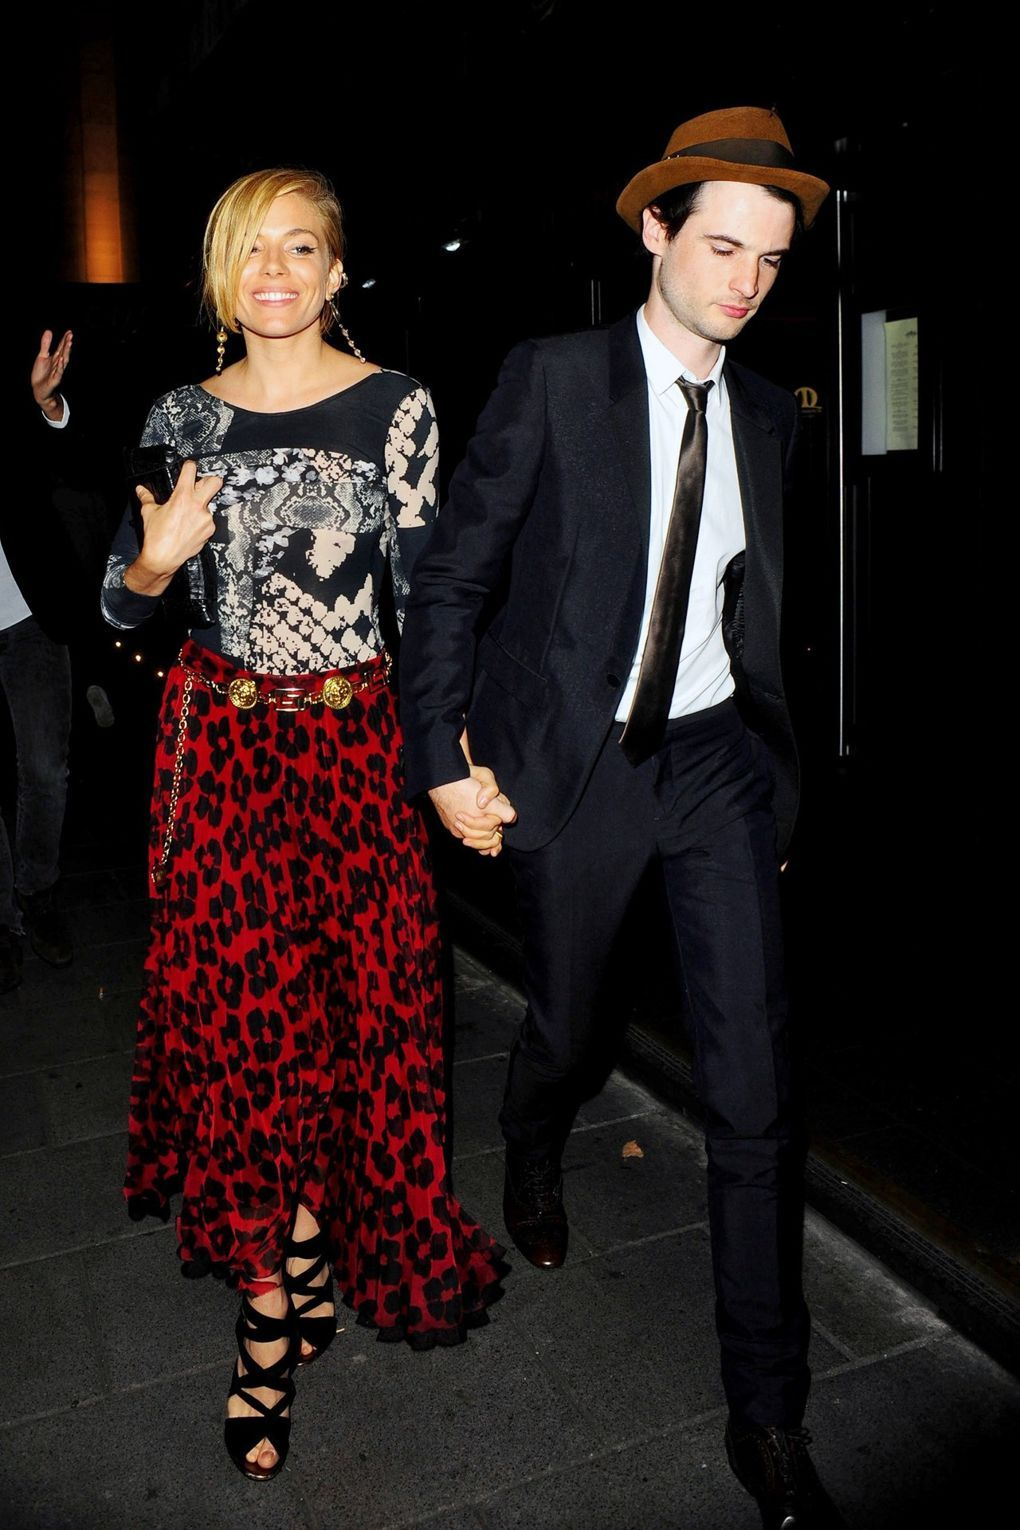 Miller wore an animal-print top and skirt with a side-swept, short hairstyle for dinner at J Sheekey in London.